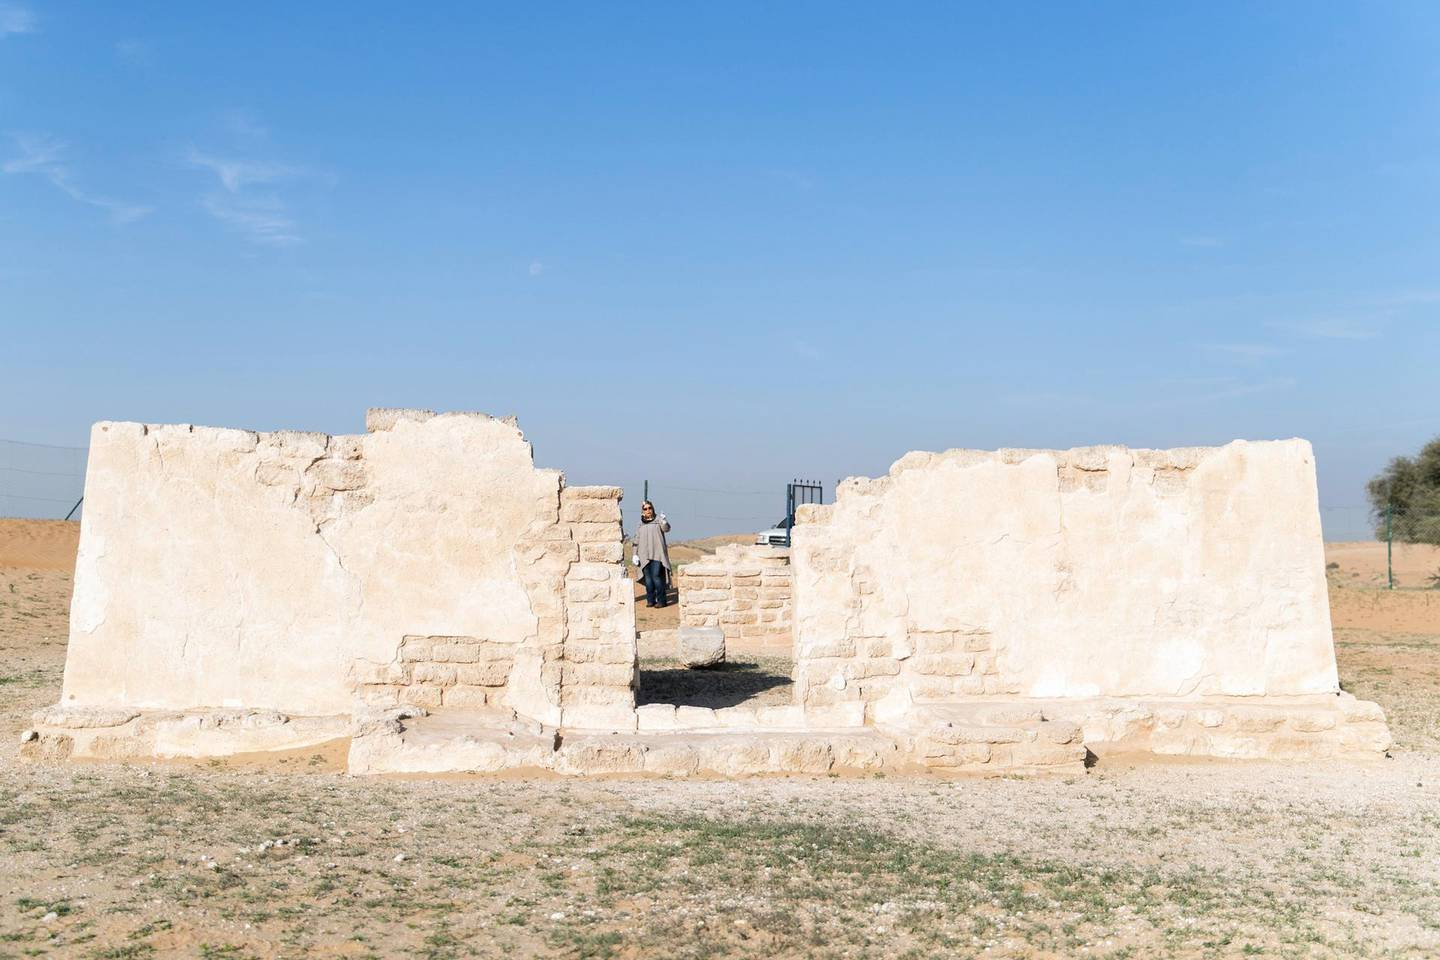 UMM AL QUWAIN, UNITED ARAB EMIRATES - DECEMBER 26, 2018. Al Shimish temple in Ed-Dur, one of the largest archaeological sites in the UAE.The antiquities and heritage department in UAQ is offering people a  10-day archaeology exploration course at the site.(Photo by Reem Mohammed/The National)Reporter: RUBA HAZASection:  NA